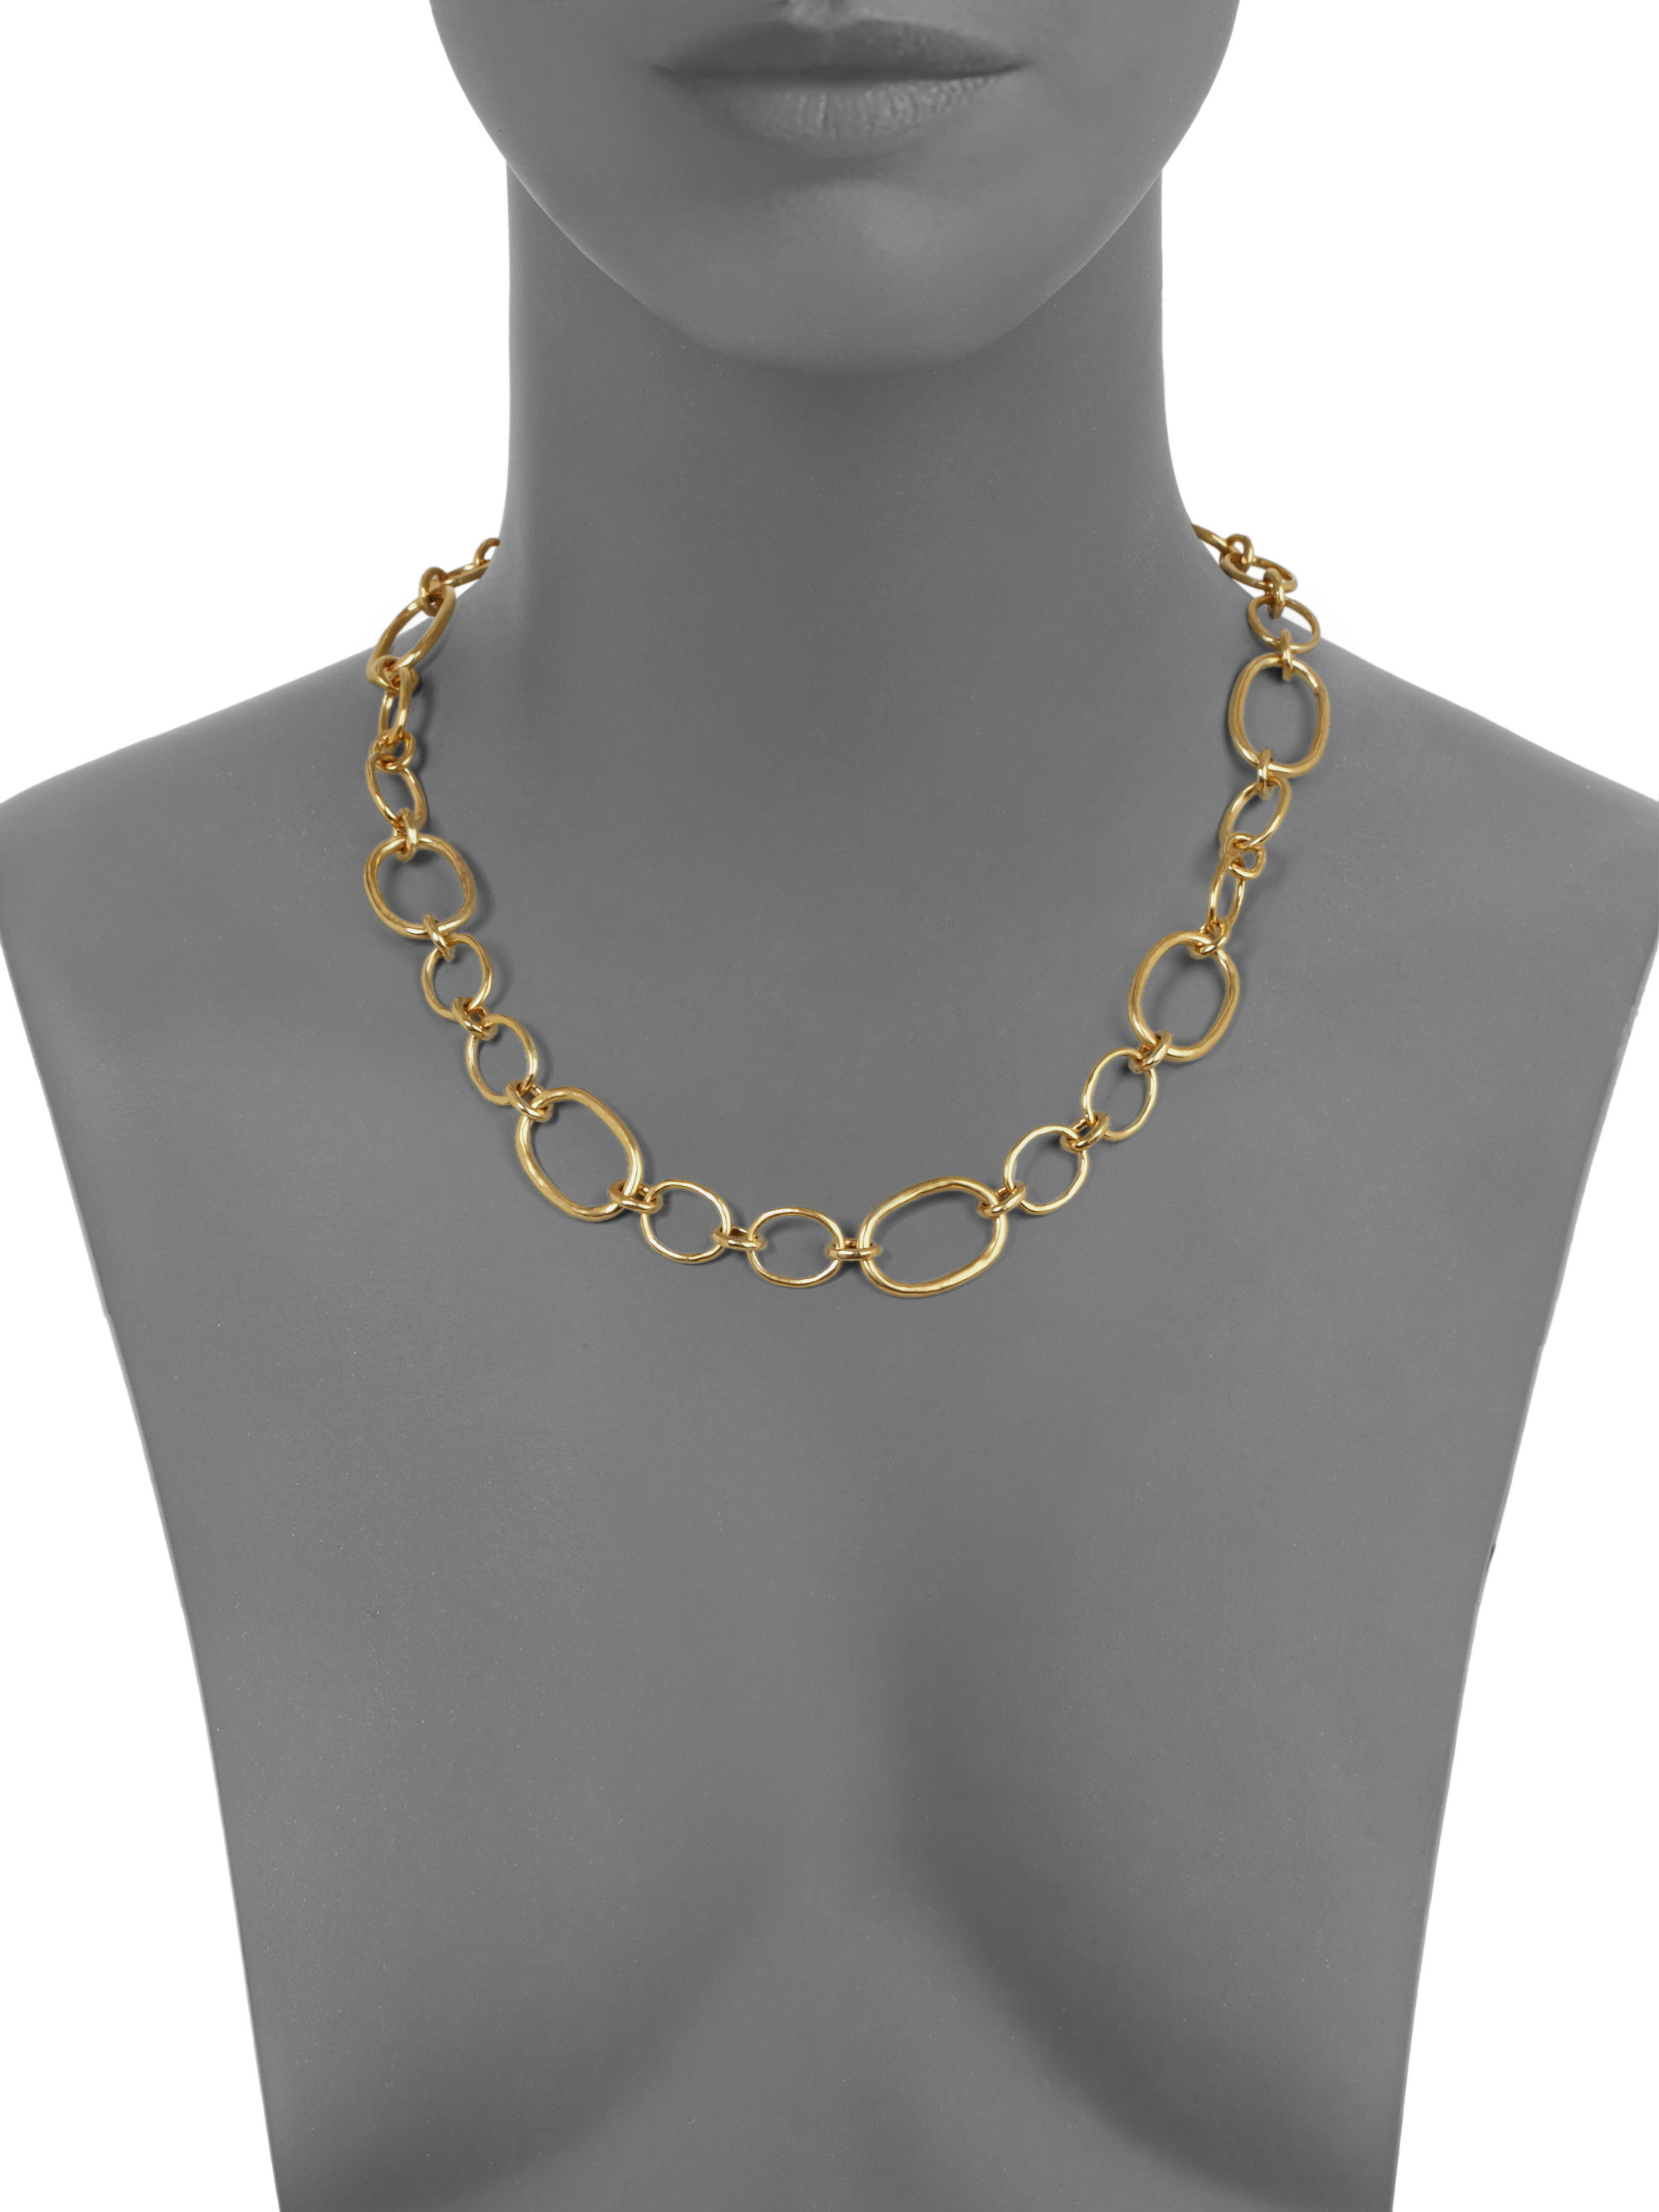 necklaces uk jewellery ubu bijouled from oval link necklace